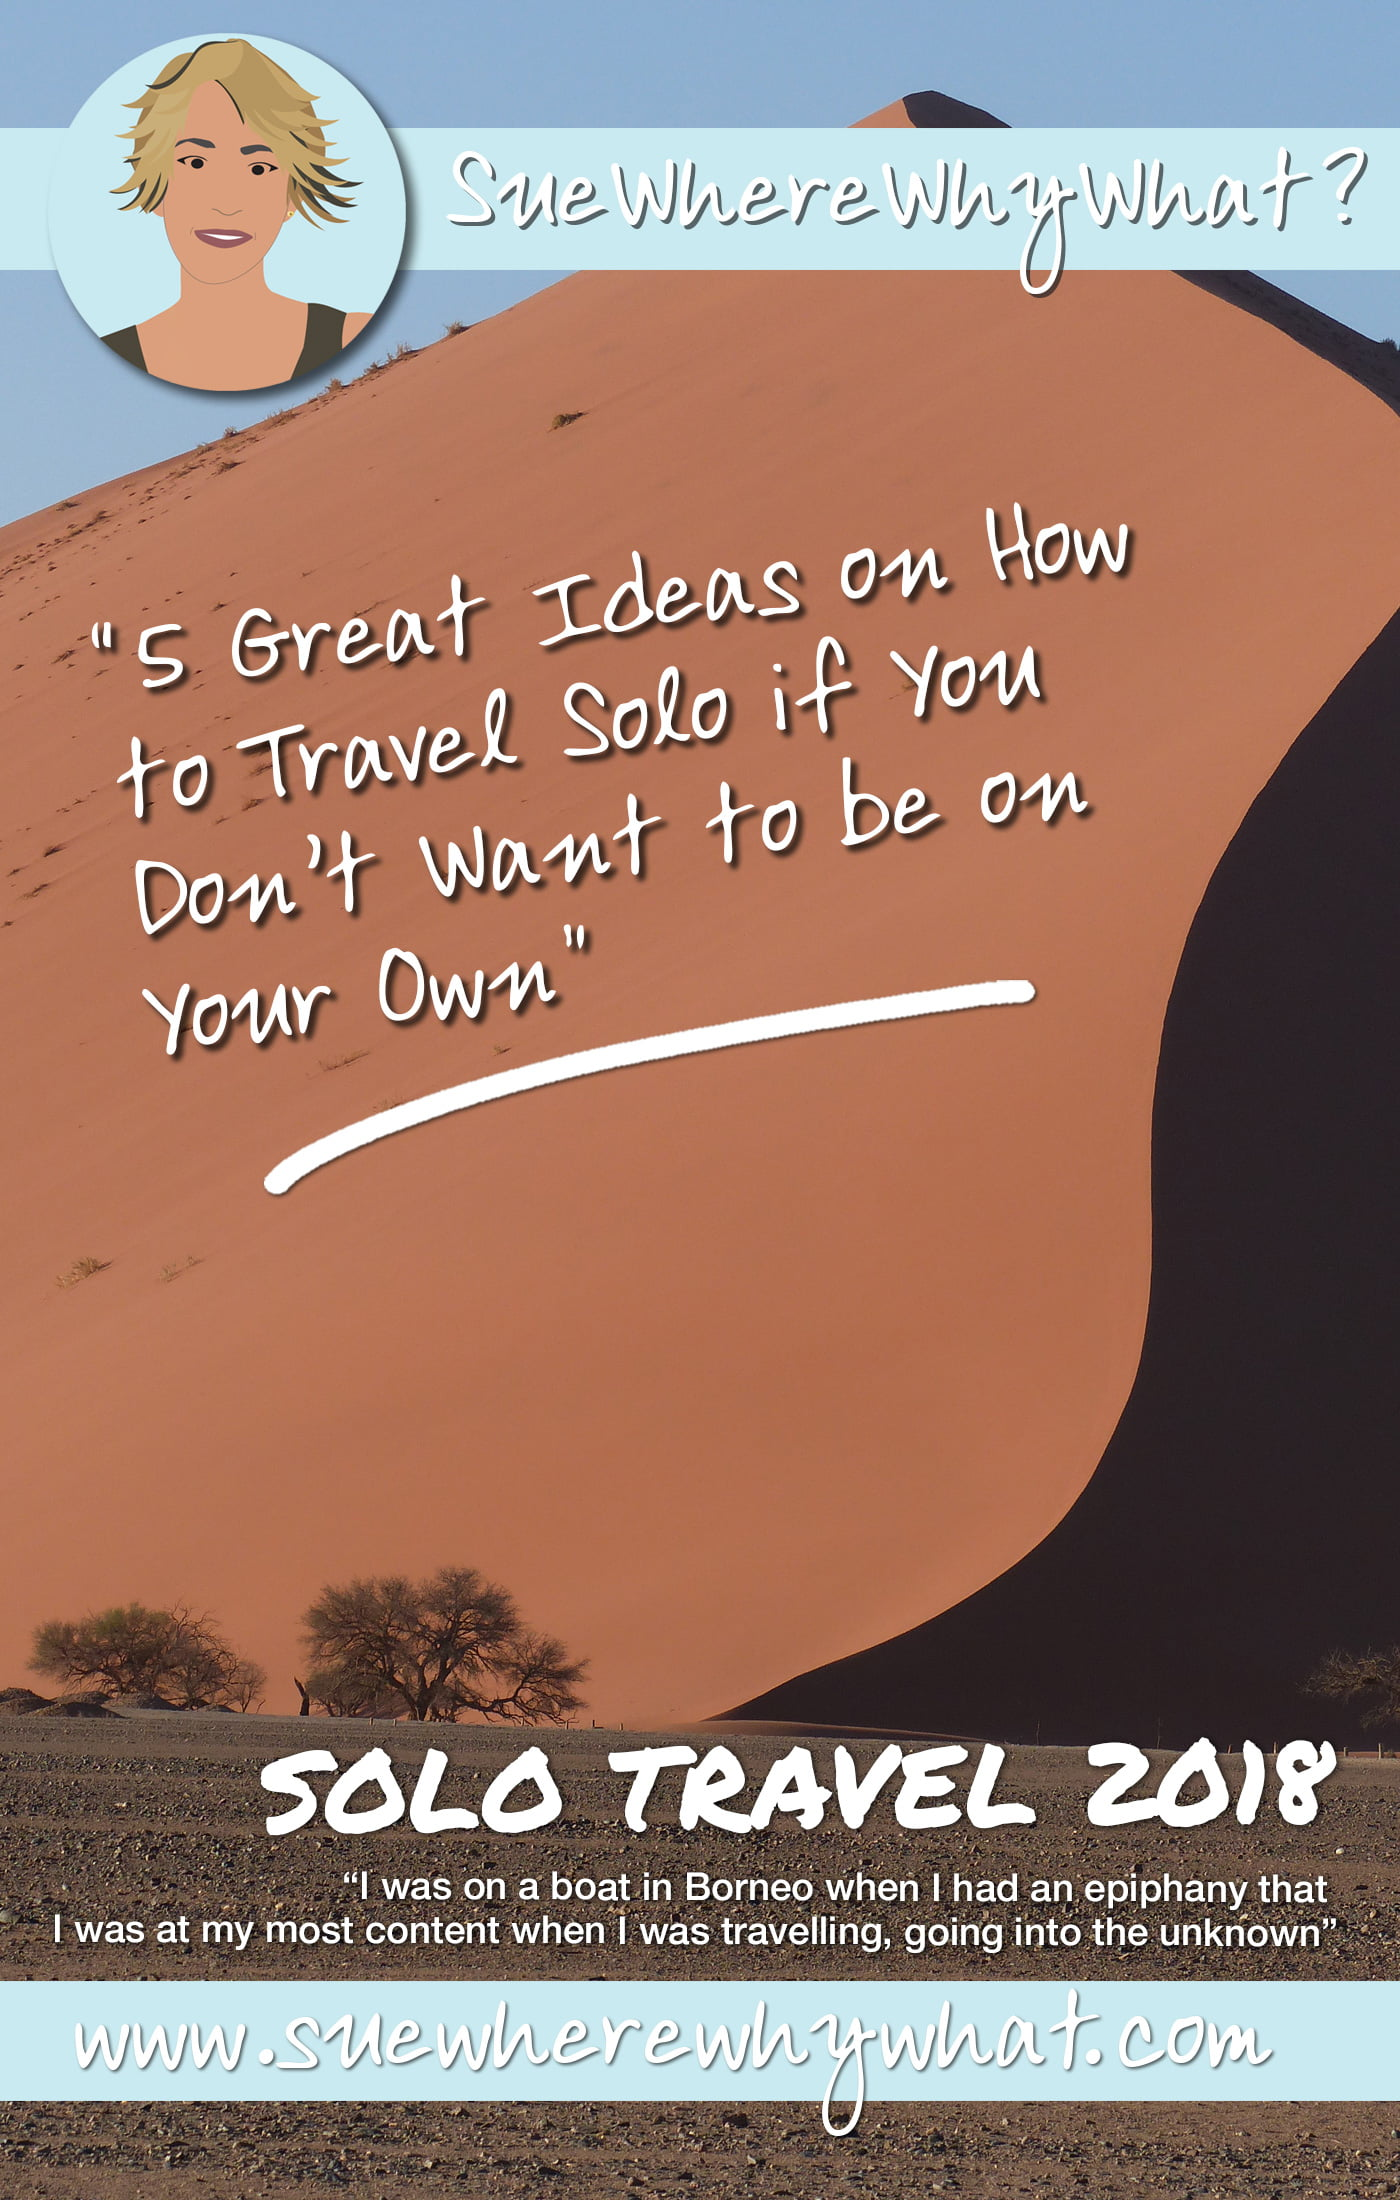 My top tips on Female Solo Travel after 25 years on the road. Includes top destinations & ideas if you are going solo but nervous for your first time. How to GO alone if you don't want to BE alone! https://www.suewherewhywhat.com/activities/5-great-ideas-on-how-to-travel-solo-if-you-dont-want-to-be-on-your-own